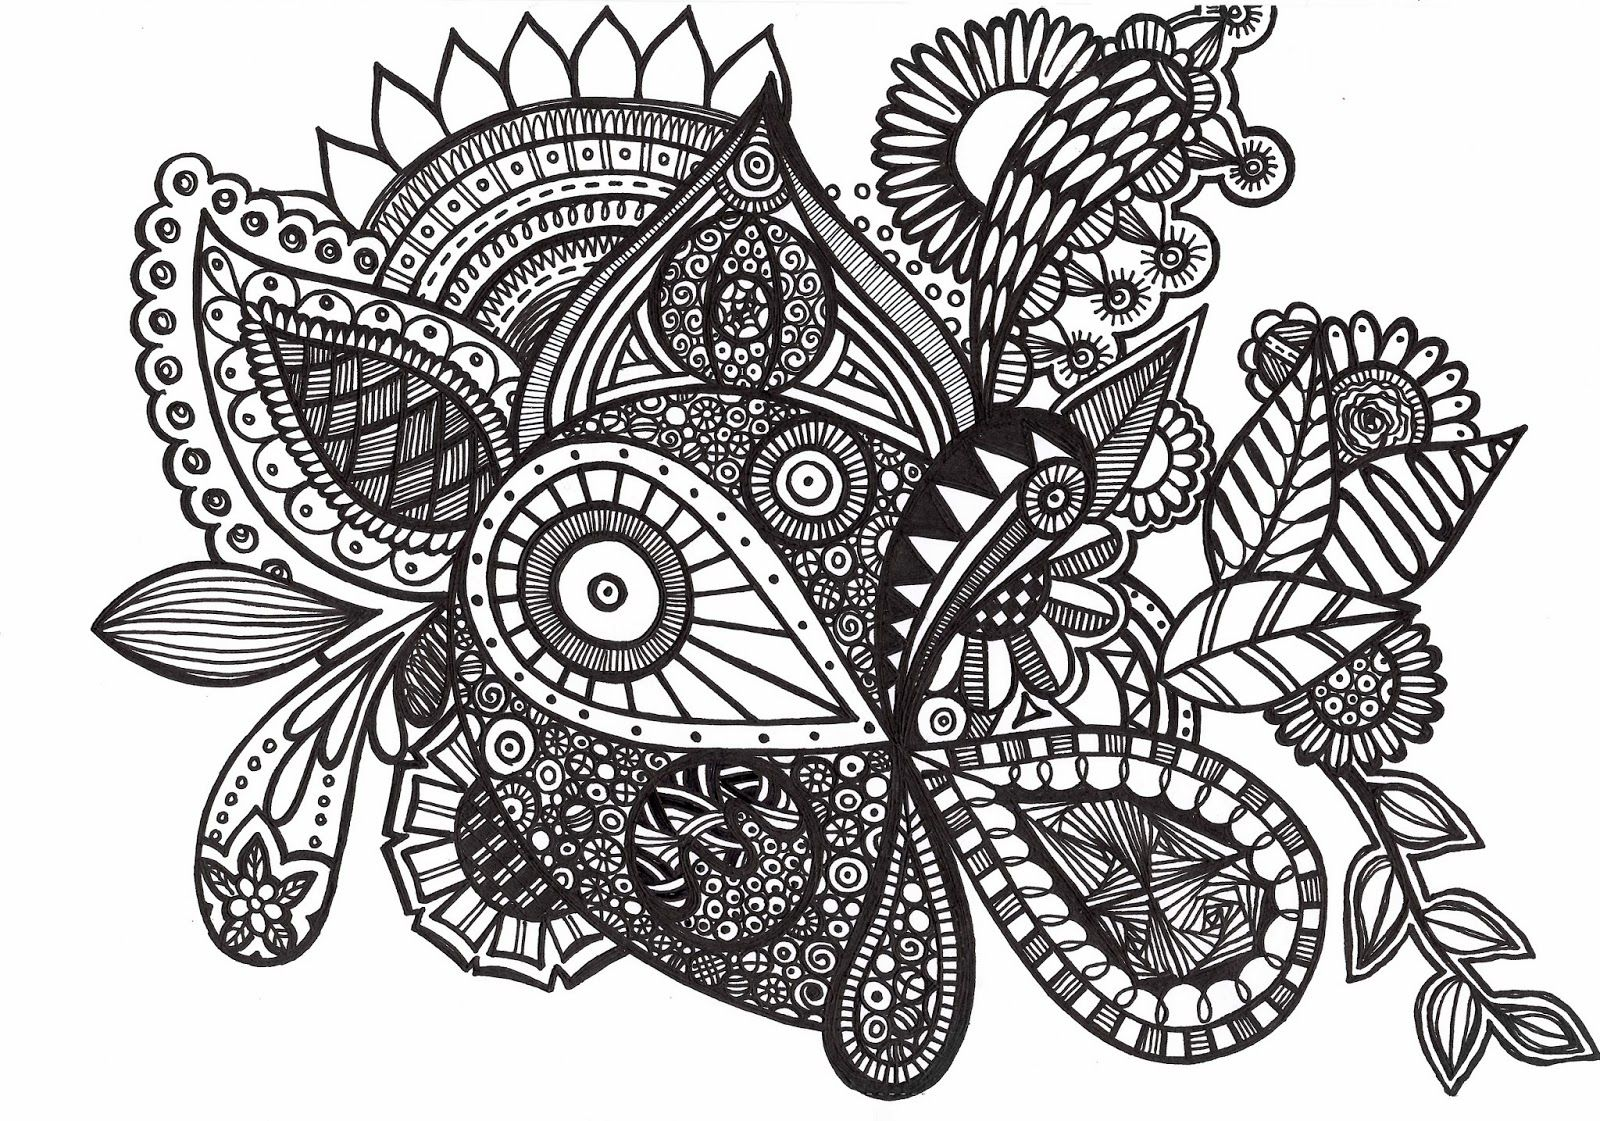 Doodling My Life Away Doodles I Have Been Working On